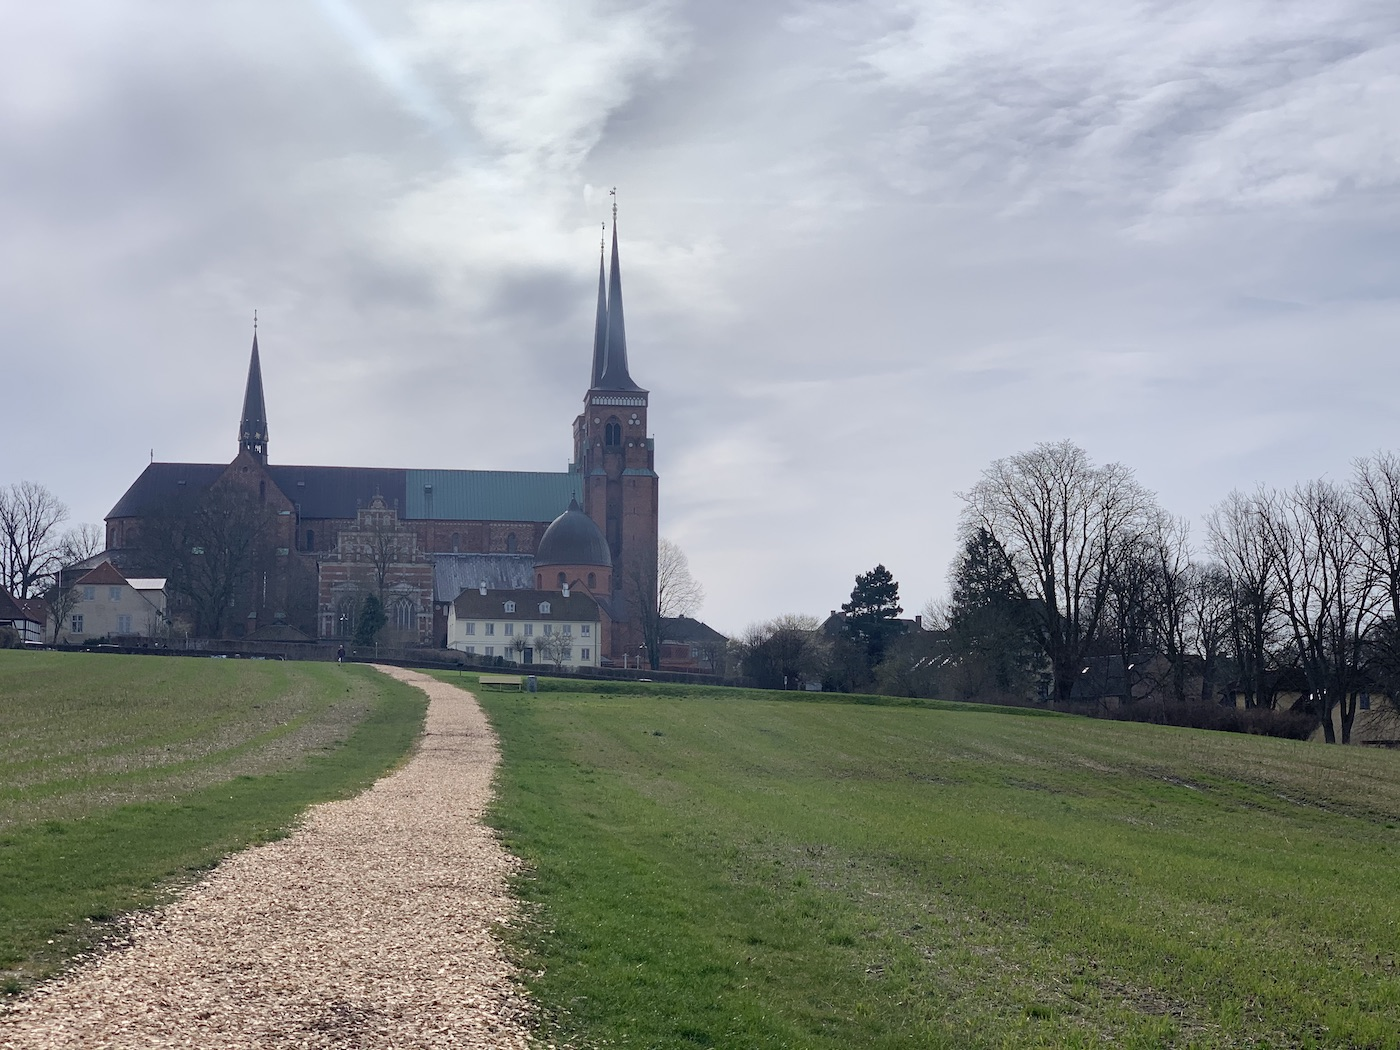 View of Roskilde Cathedral through a park